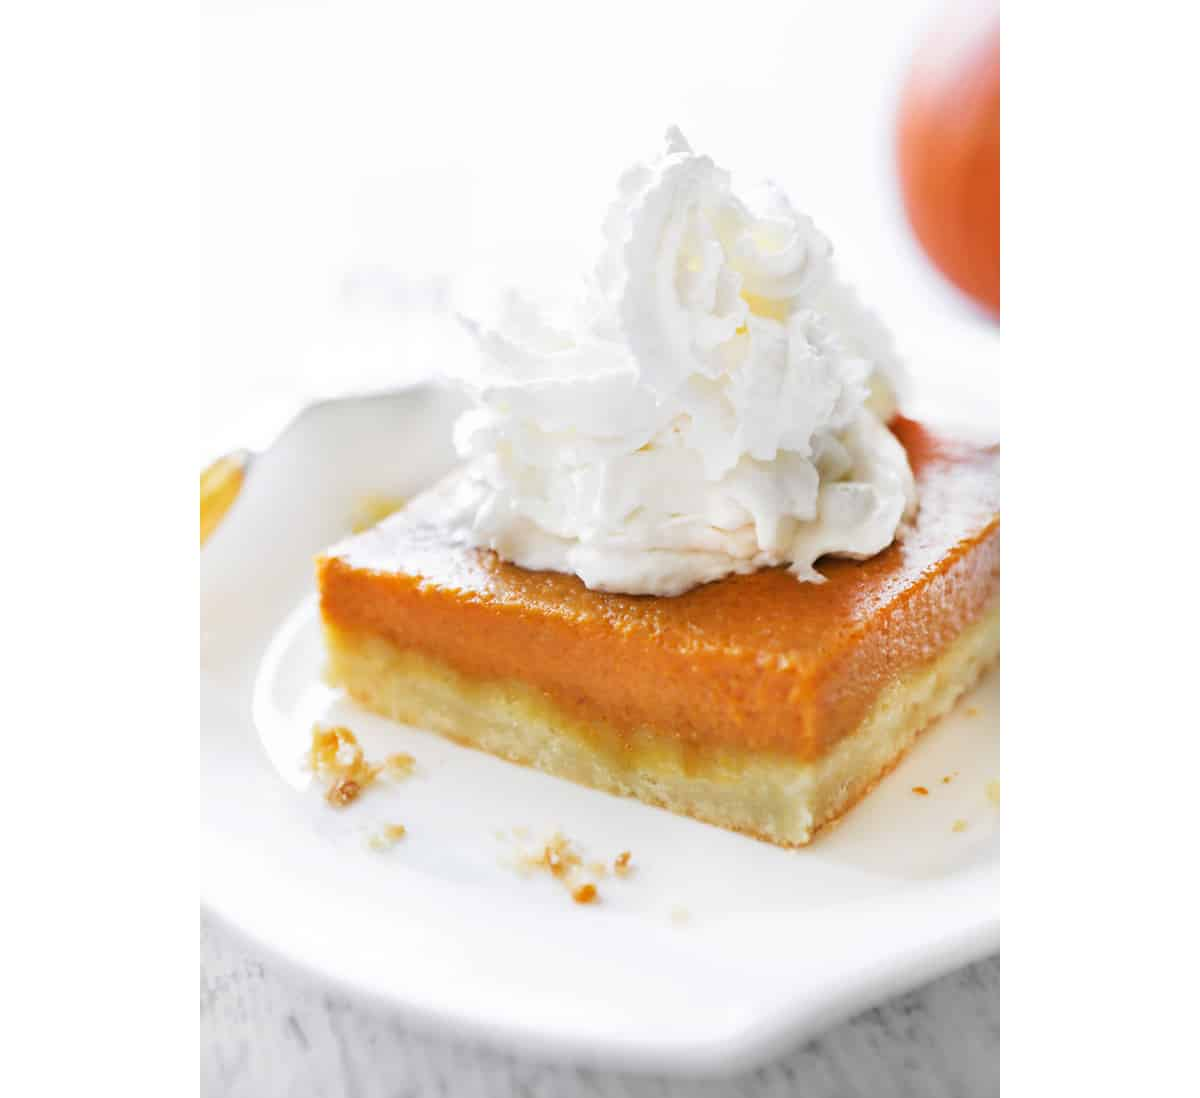 A slice of a pumpkin pie bar with whipped cream piled on top.